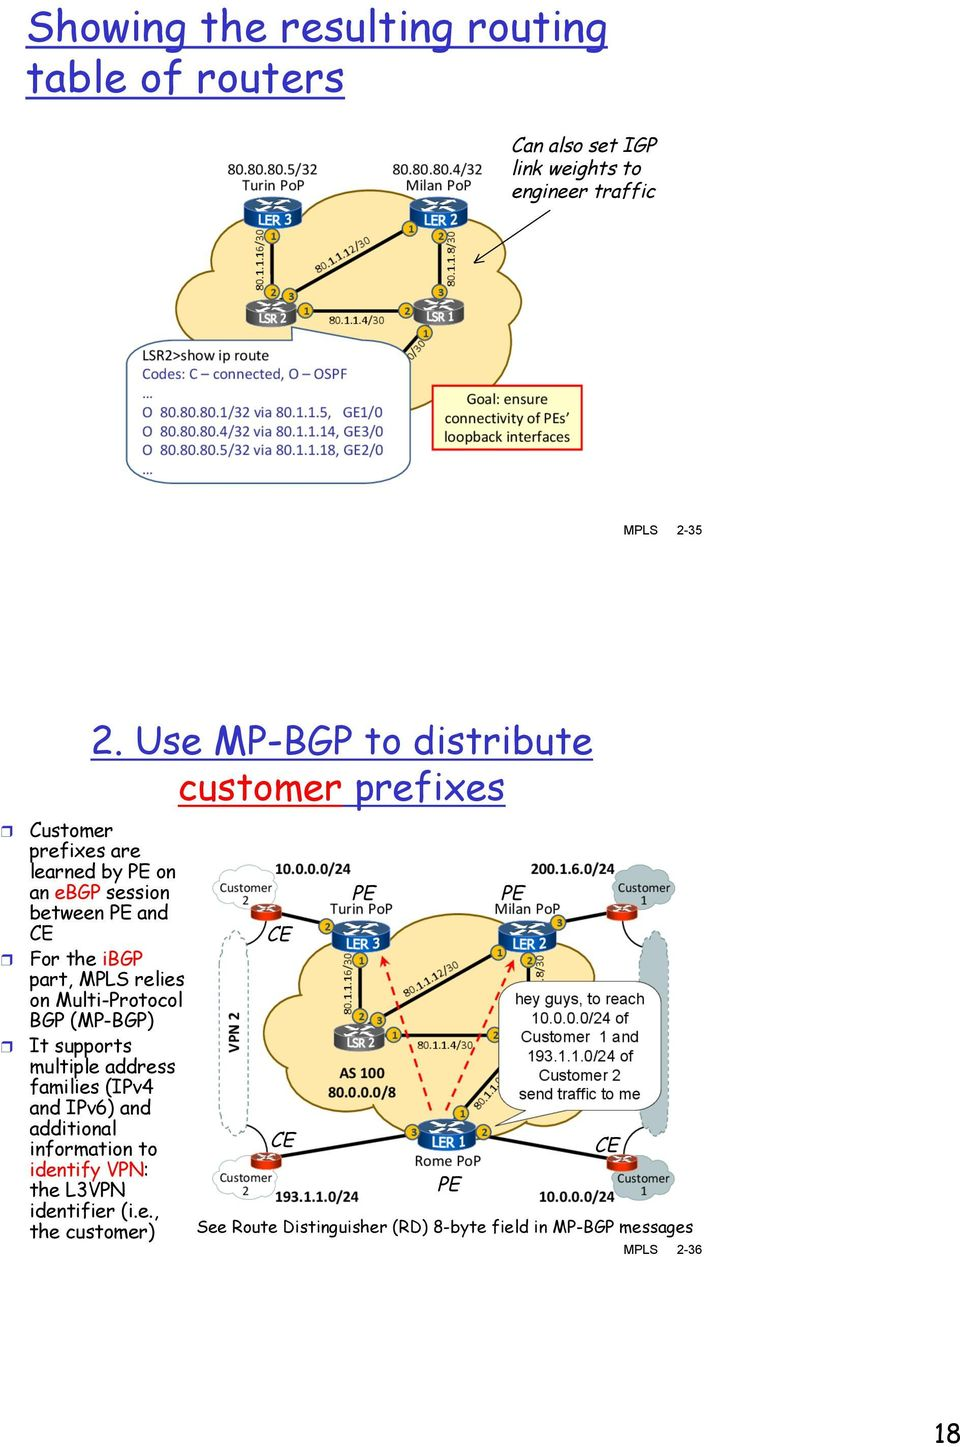 part, MPLS relies on Multi-Protocol BGP (MP-BGP) It supports multiple address families (IPv4 and IPv6) and additional information